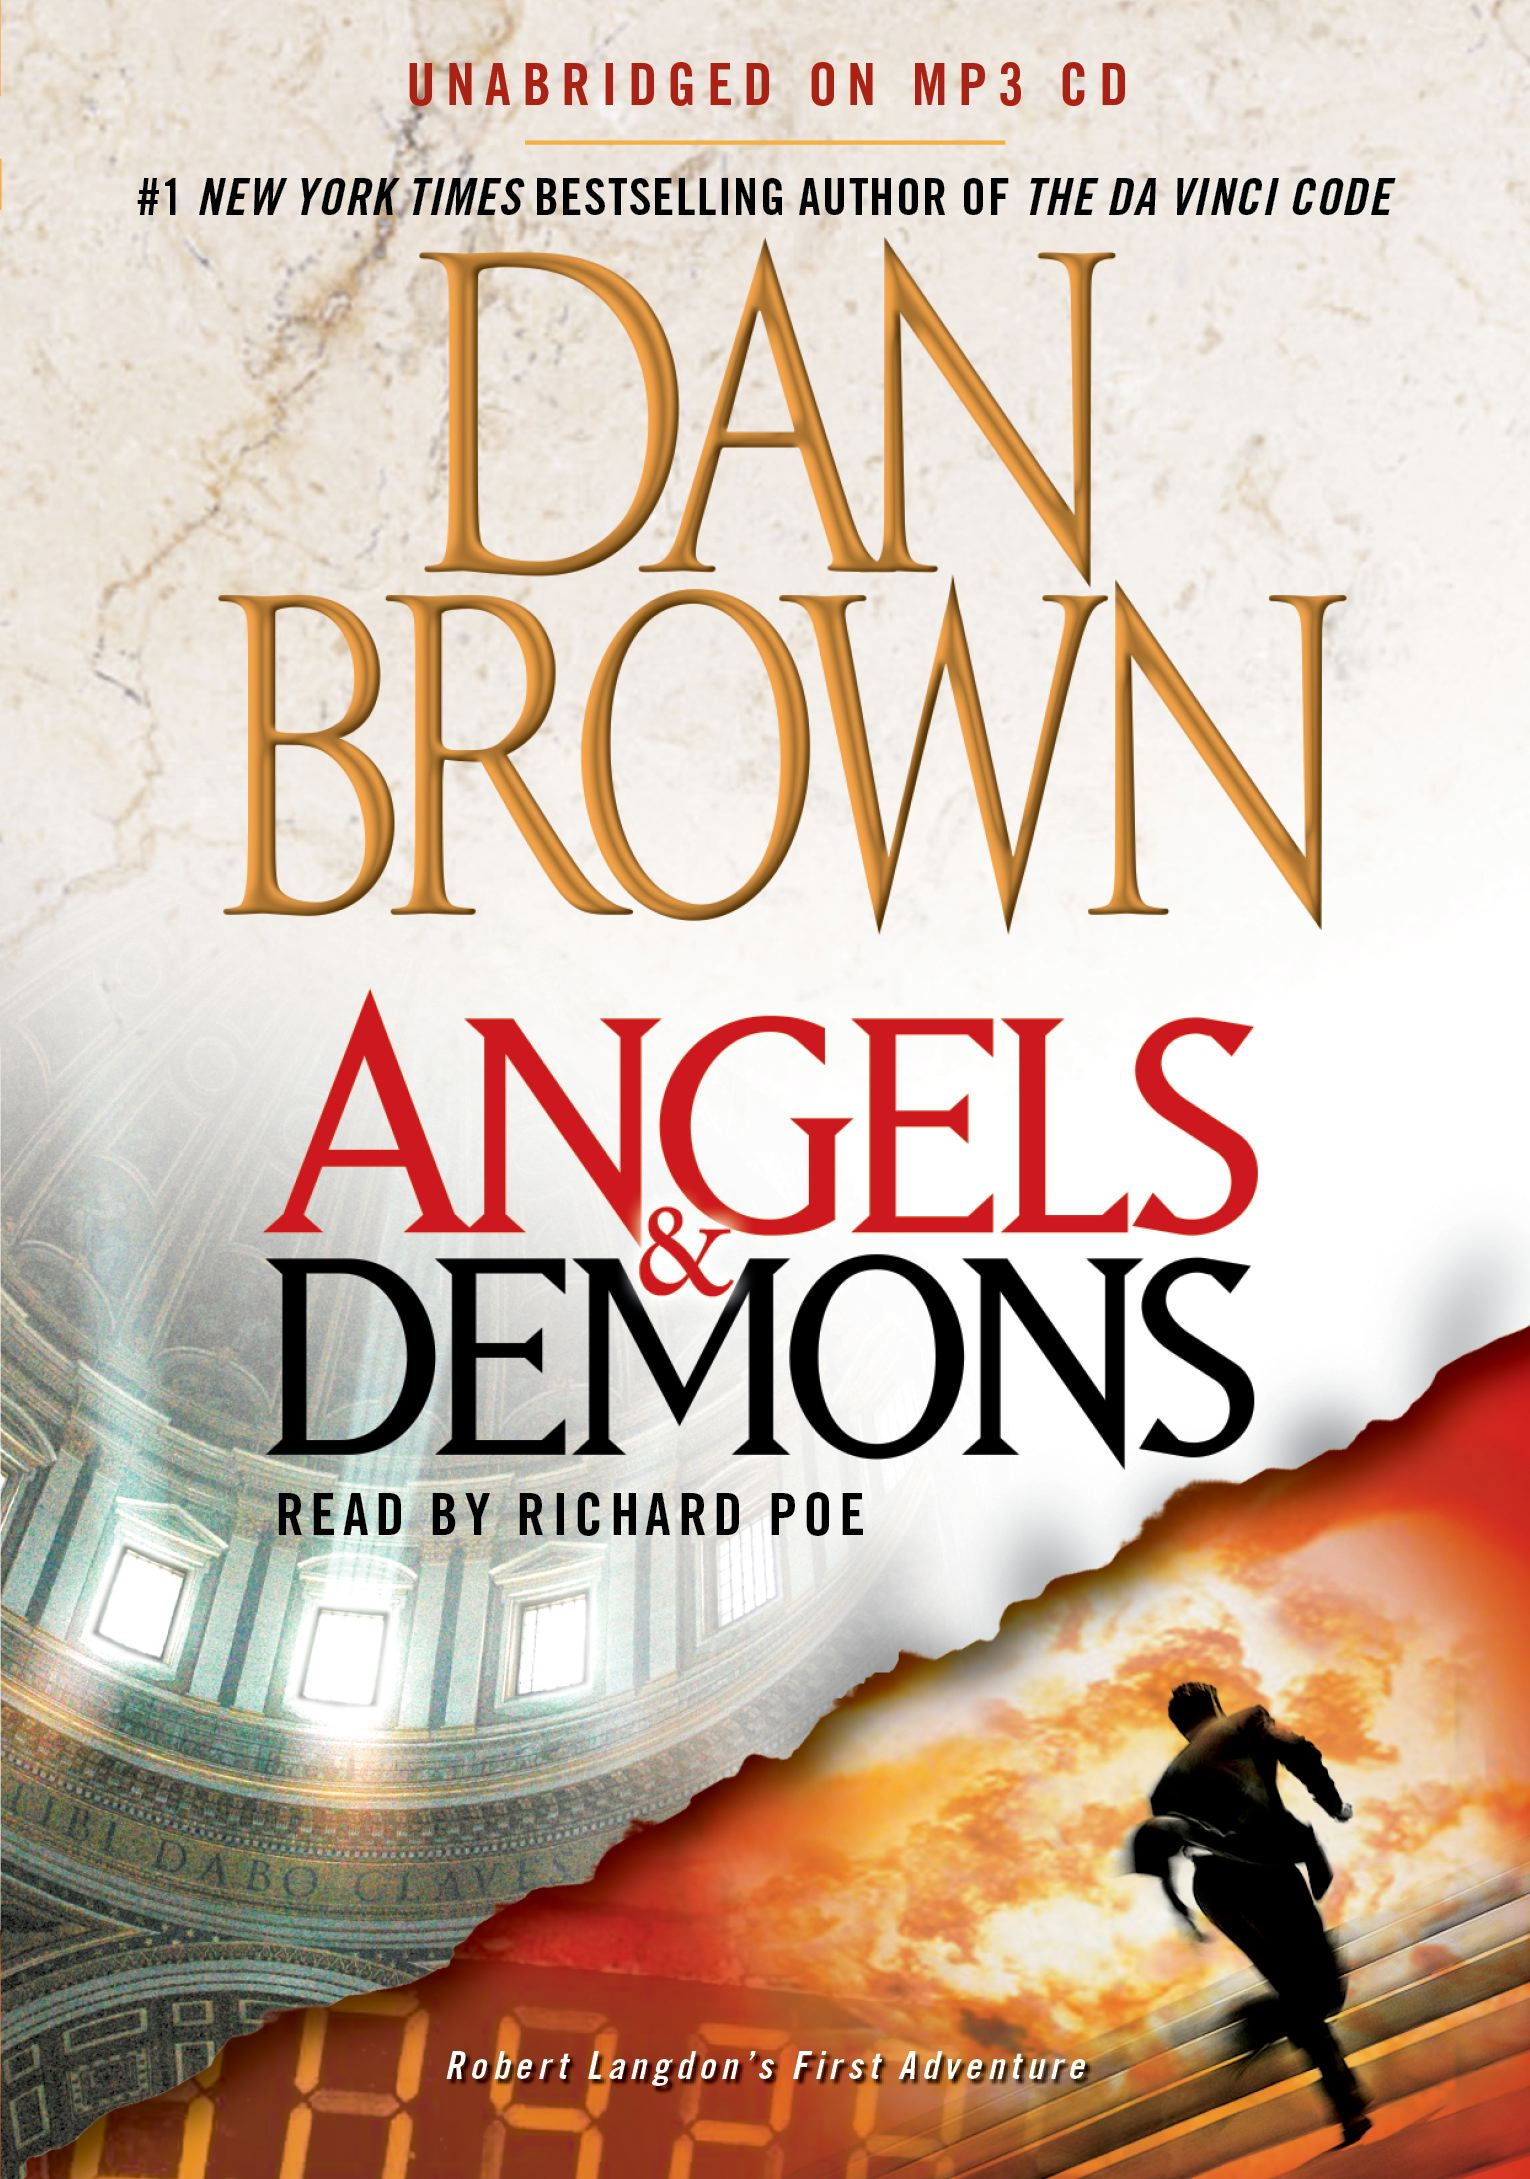 Angels demons audiobook on cd by dan brown richard poe angels demons 9781442365476 hr buycottarizona